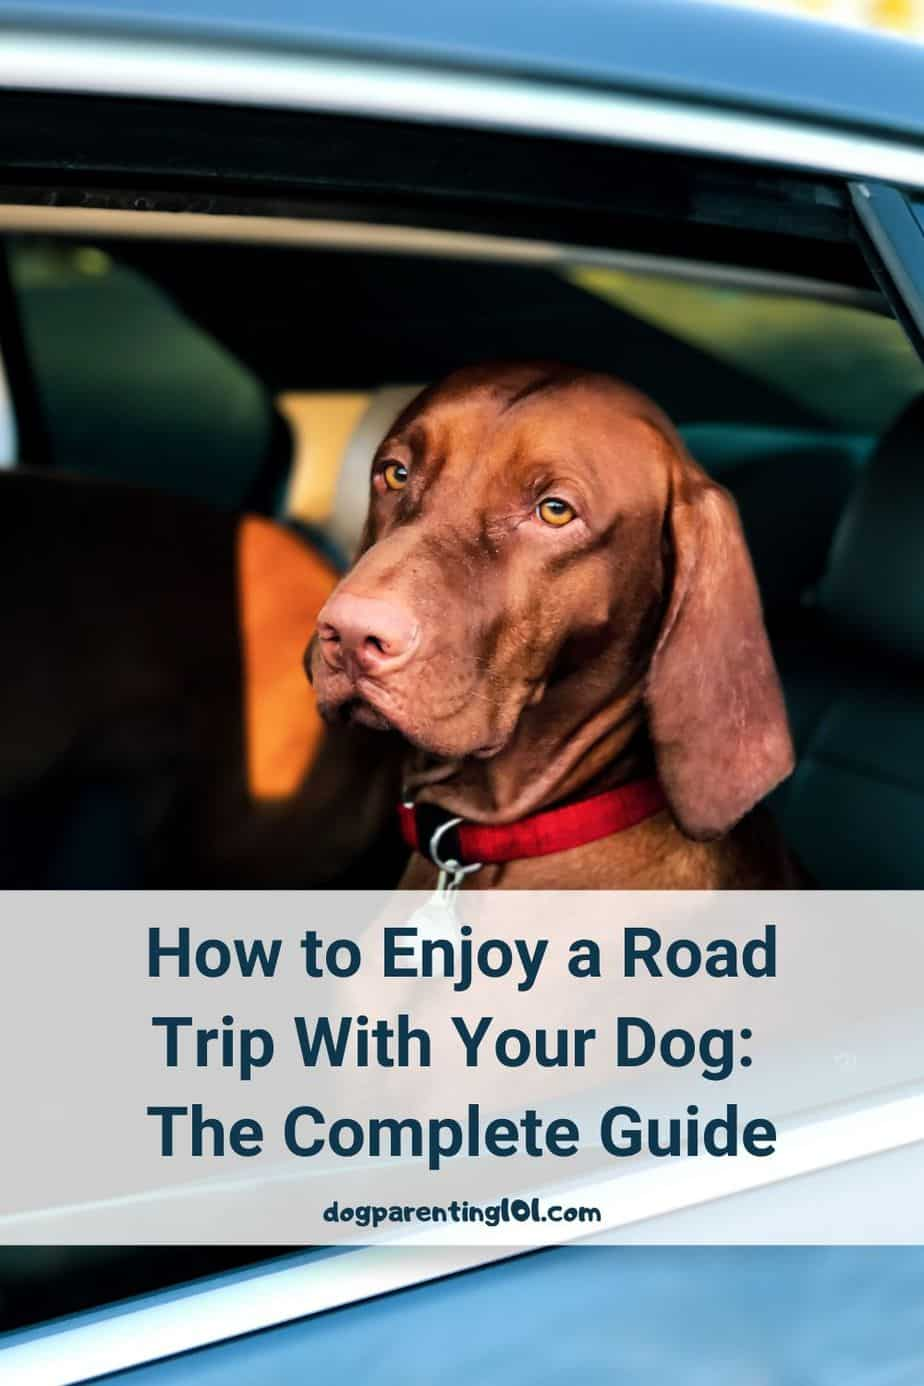 How to Enjoy a Road Trip With Your Dog The Complete Guide